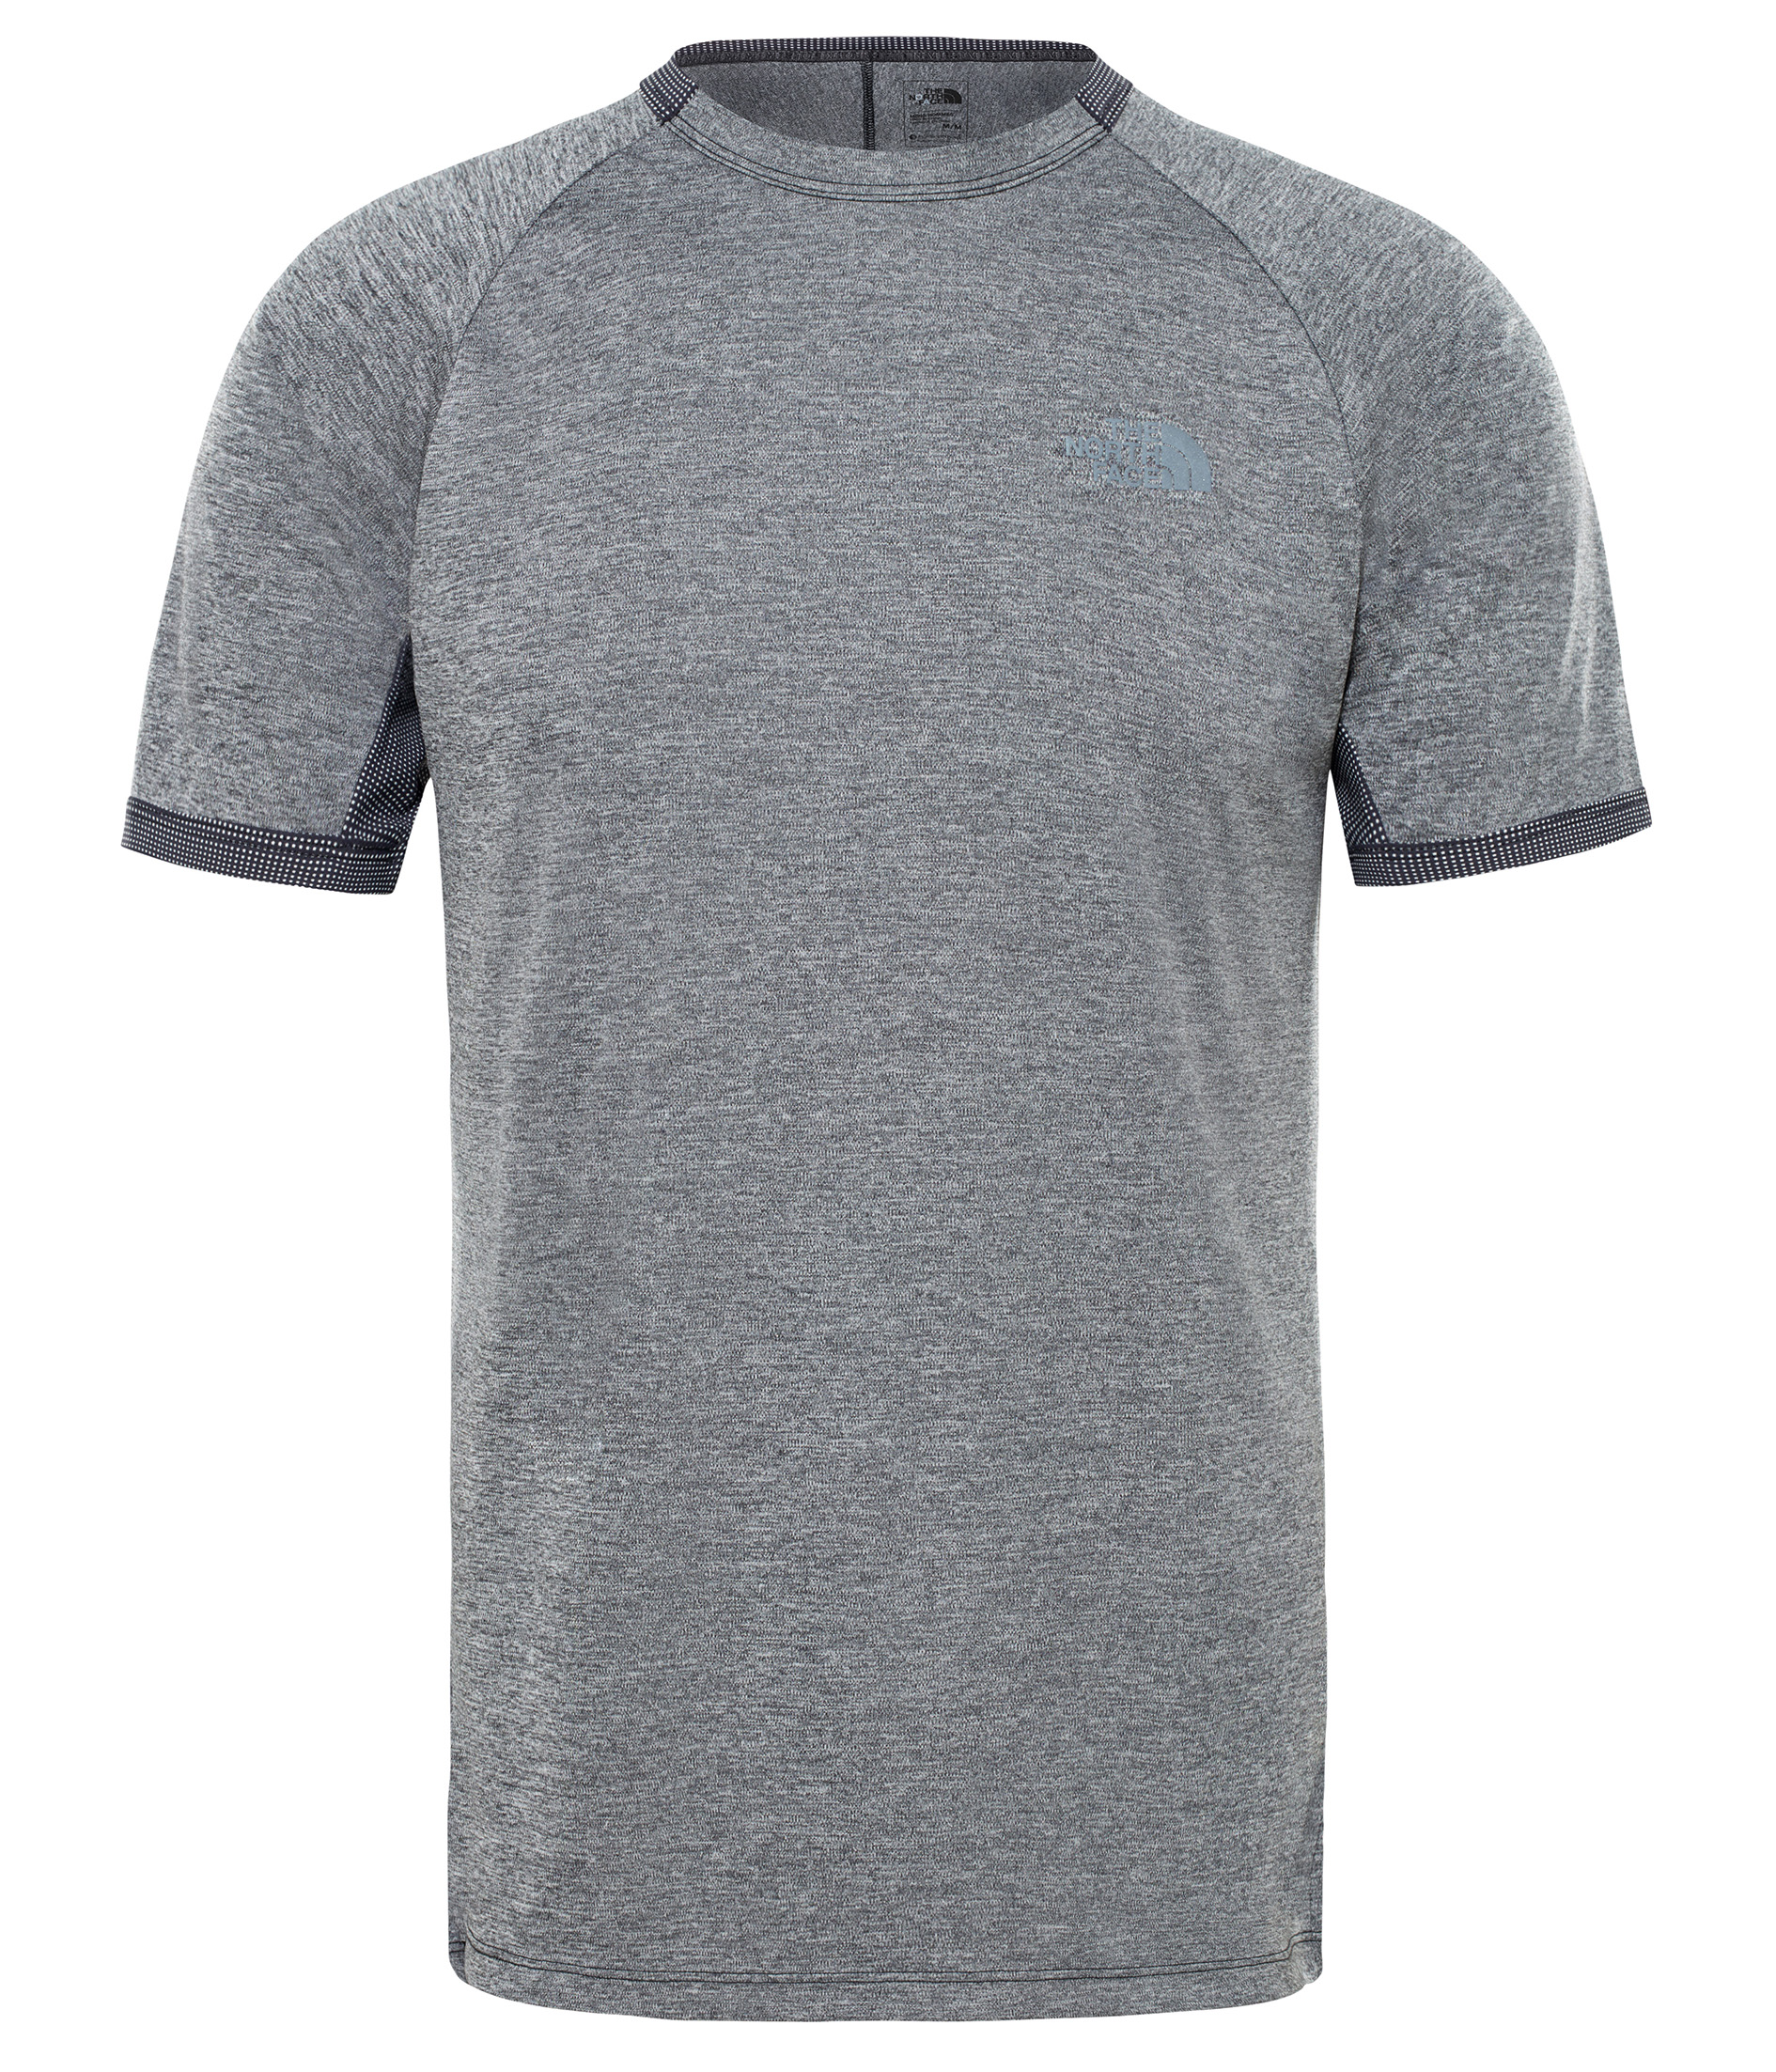 The North Face Ambition S/S Tee | Jerseys